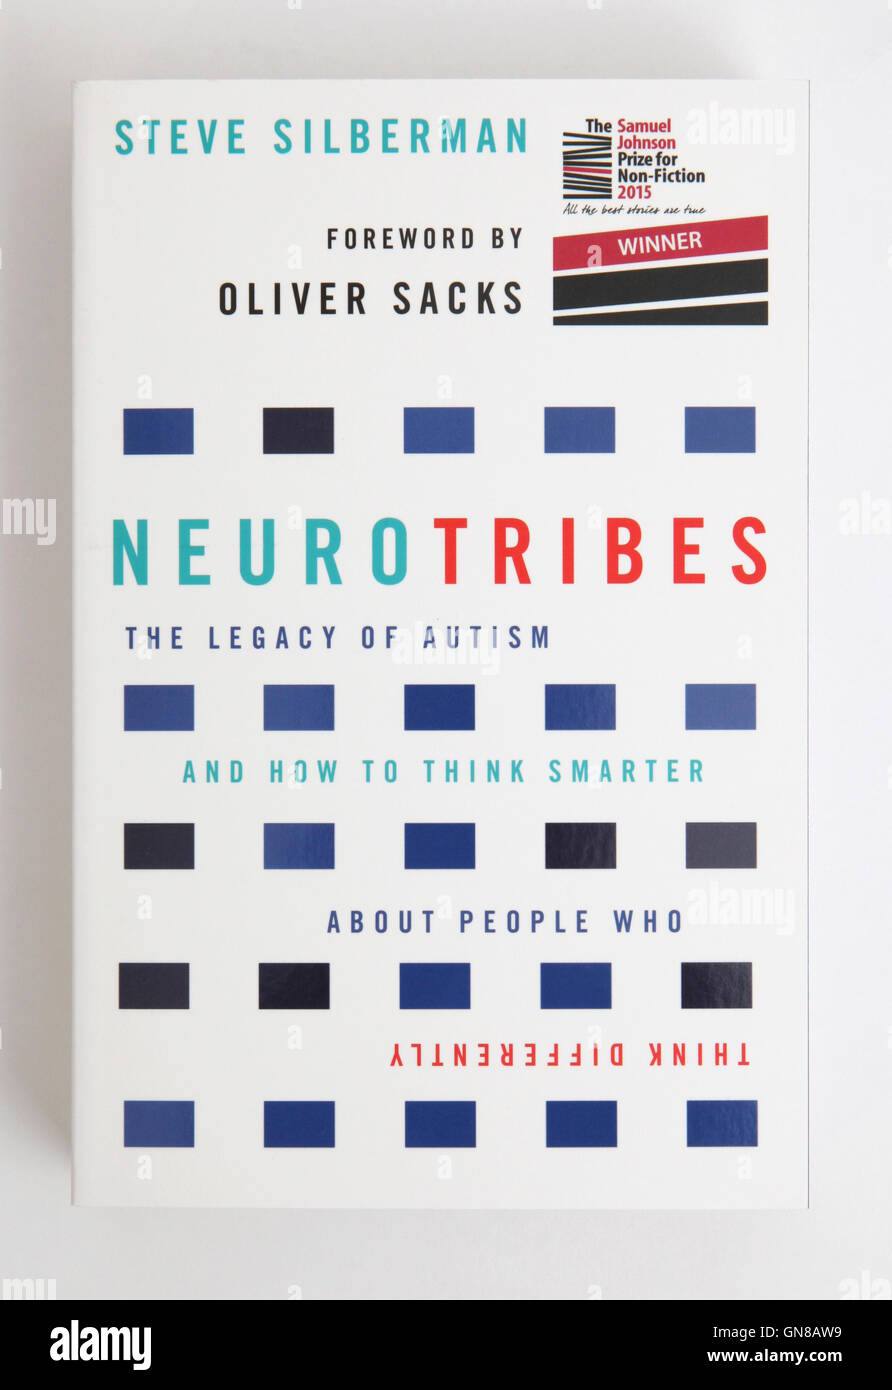 The book - Neurotribes the legacy of autism by Steve Silberman. - Stock Image